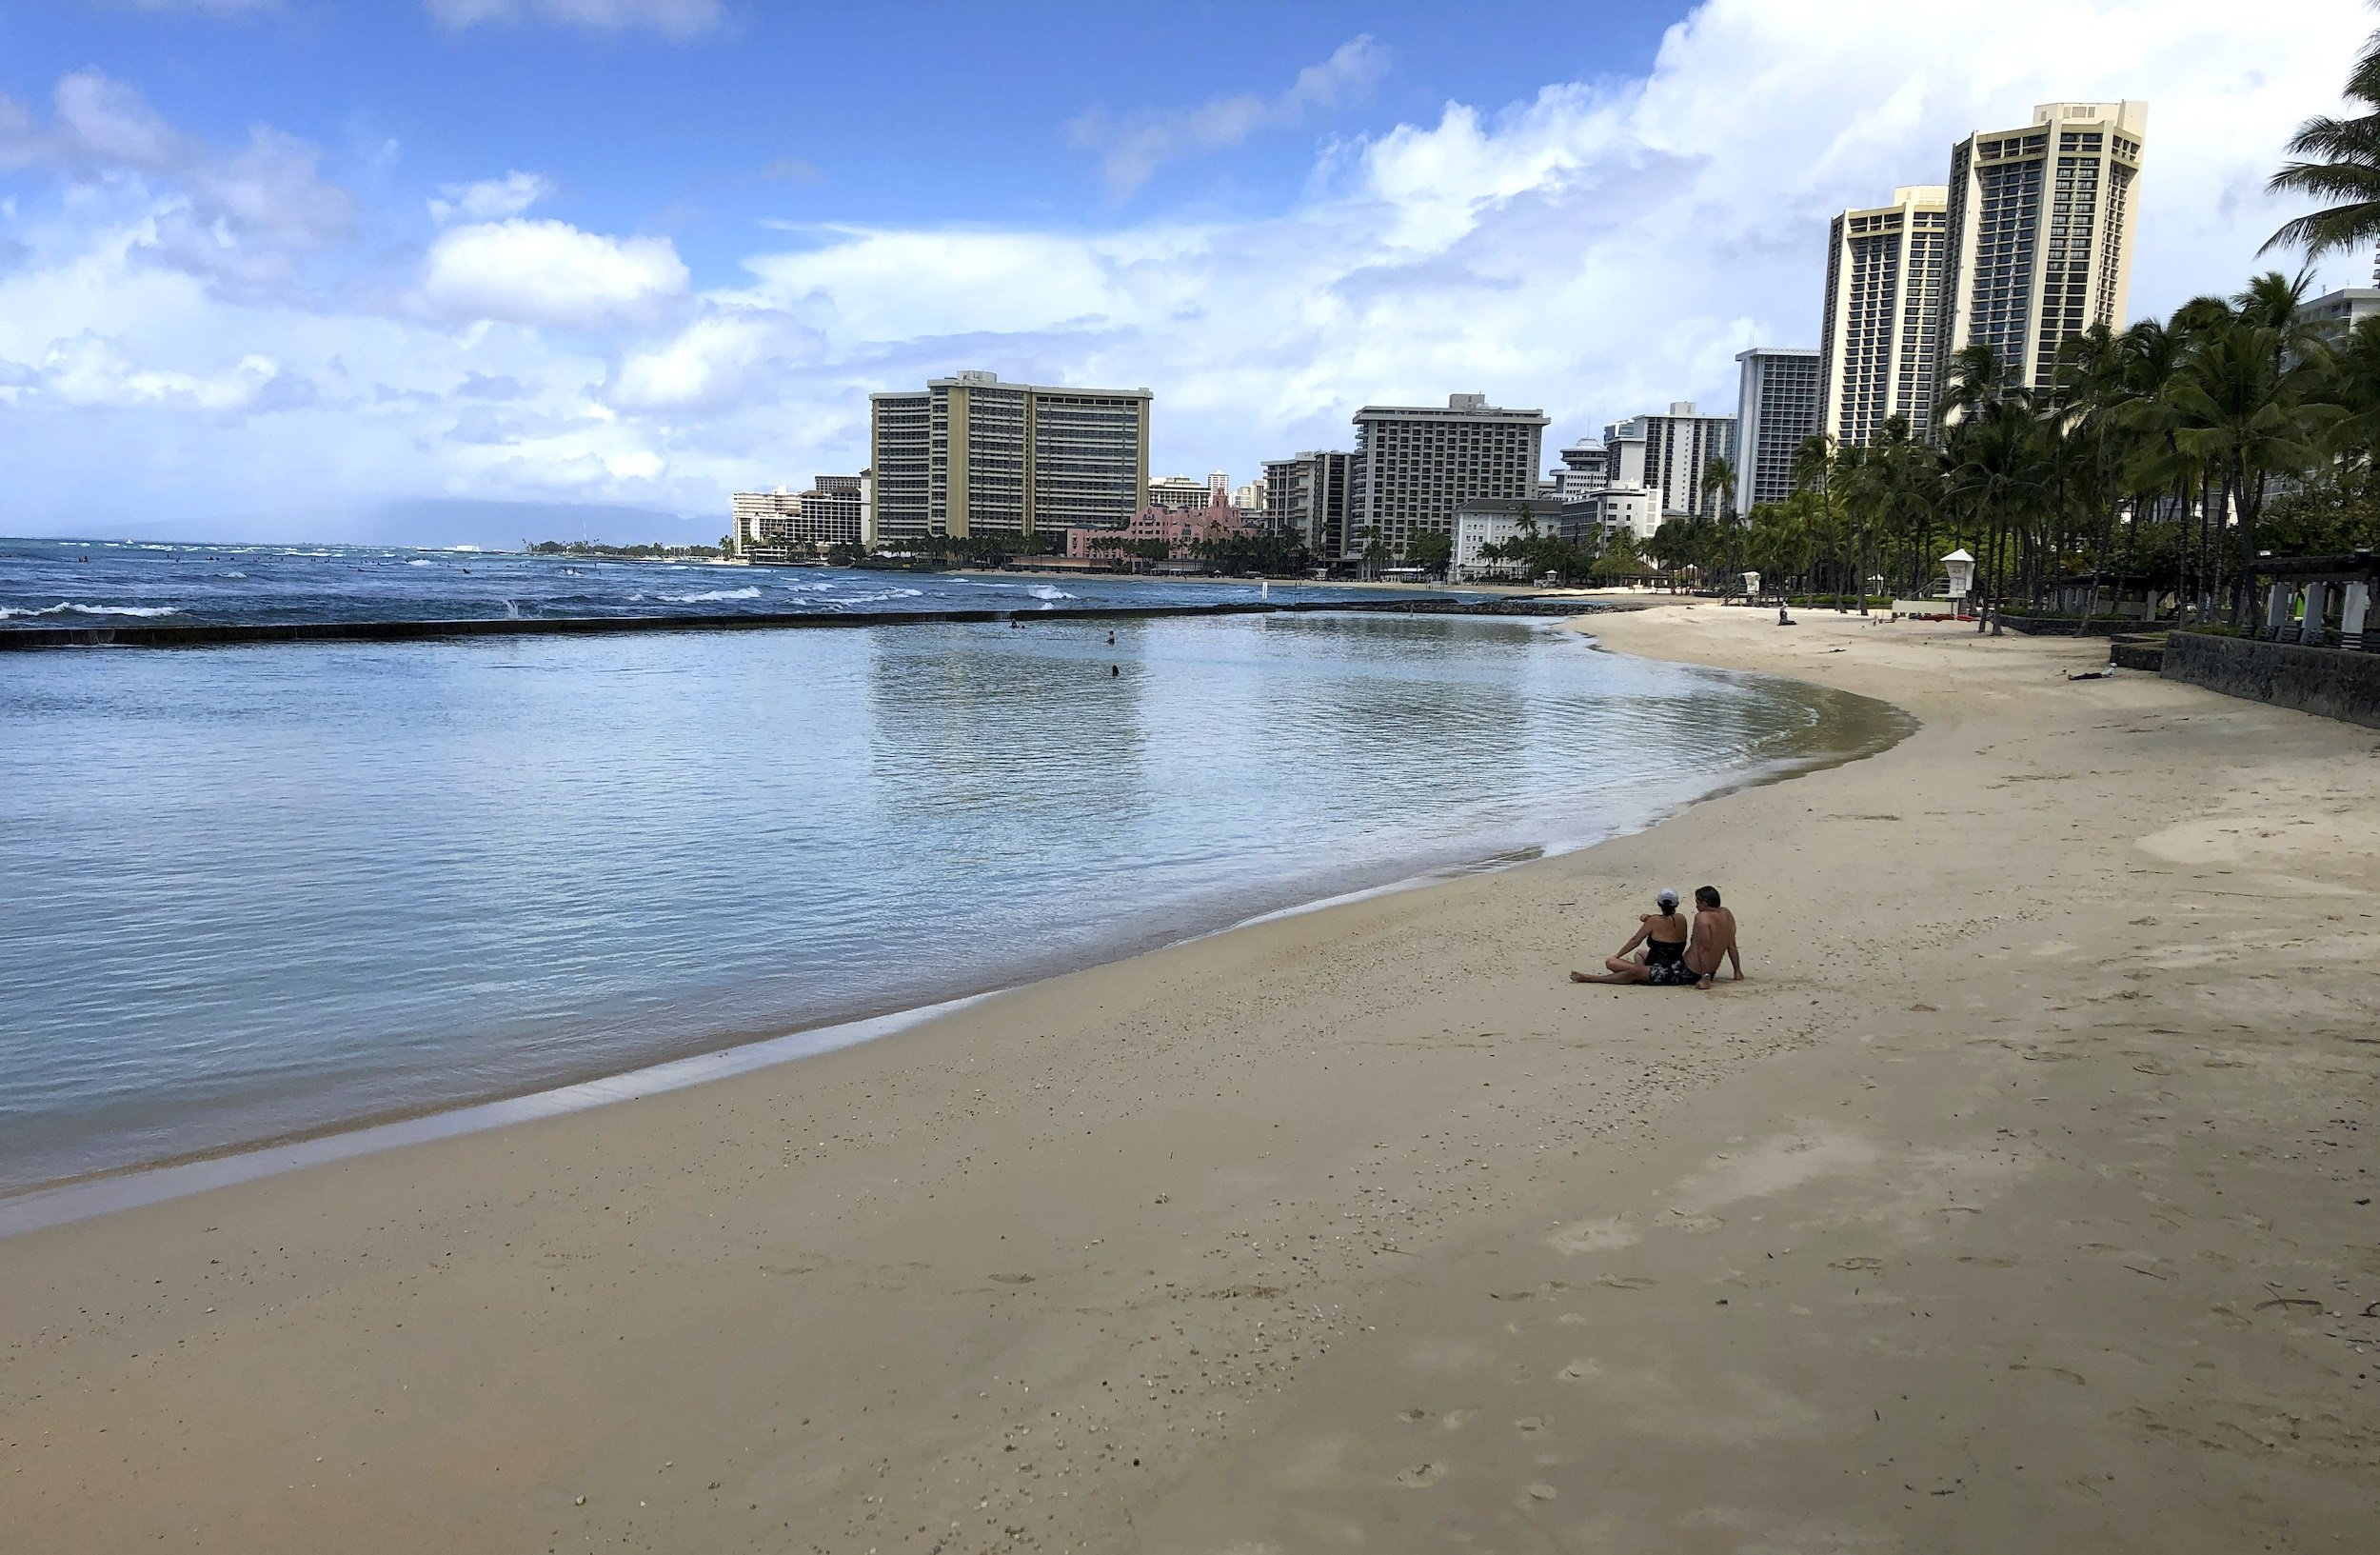 Hawaii Tourism: Visitor arrivals, spending down more than 50 percent